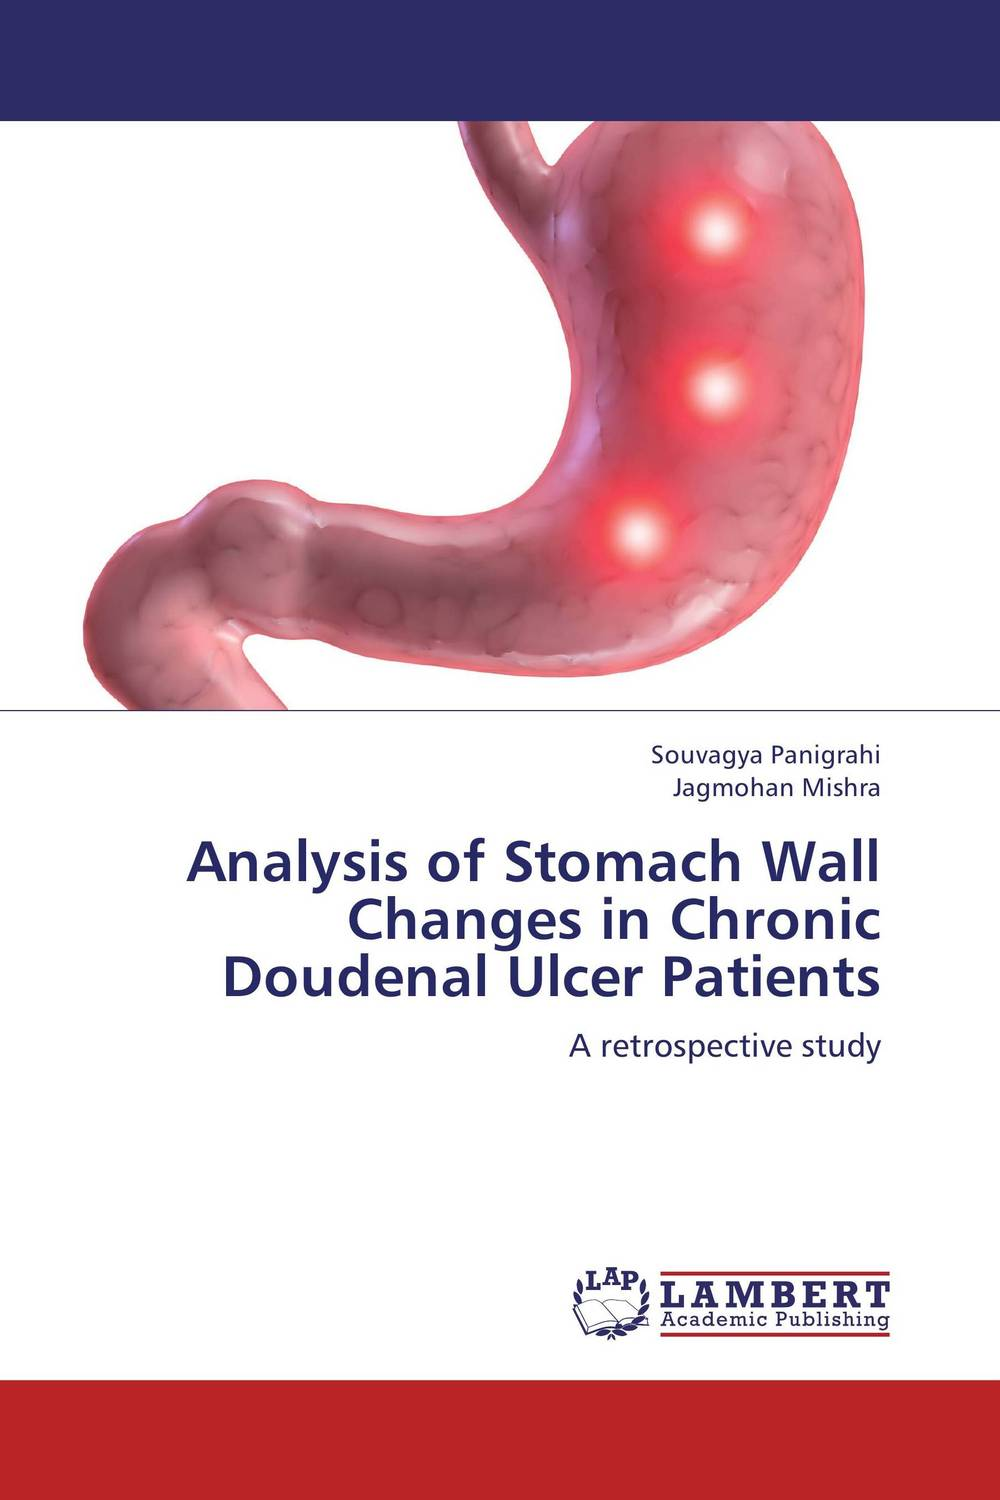 Analysis of Stomach Wall Changes in Chronic Doudenal Ulcer Patients